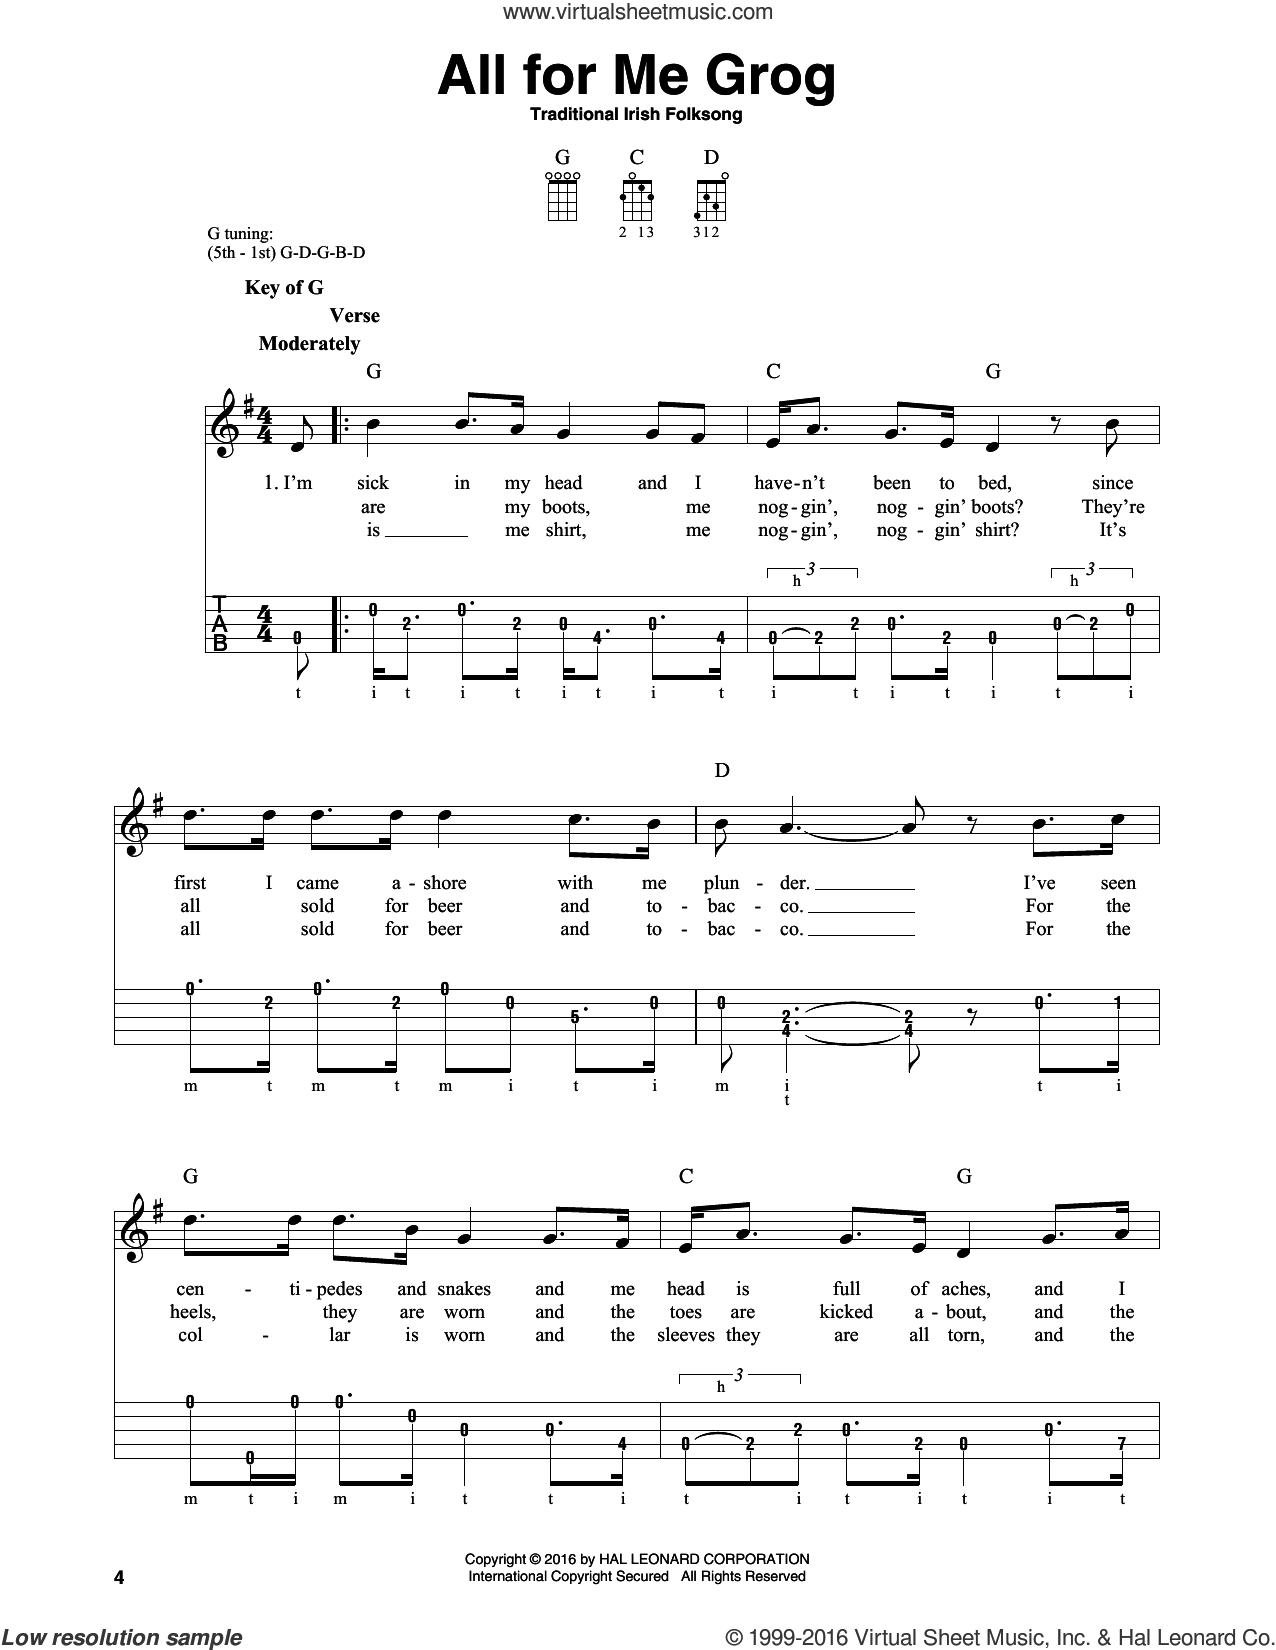 All For Me Grog sheet music for banjo solo by Traditional Irish Folksong, intermediate skill level